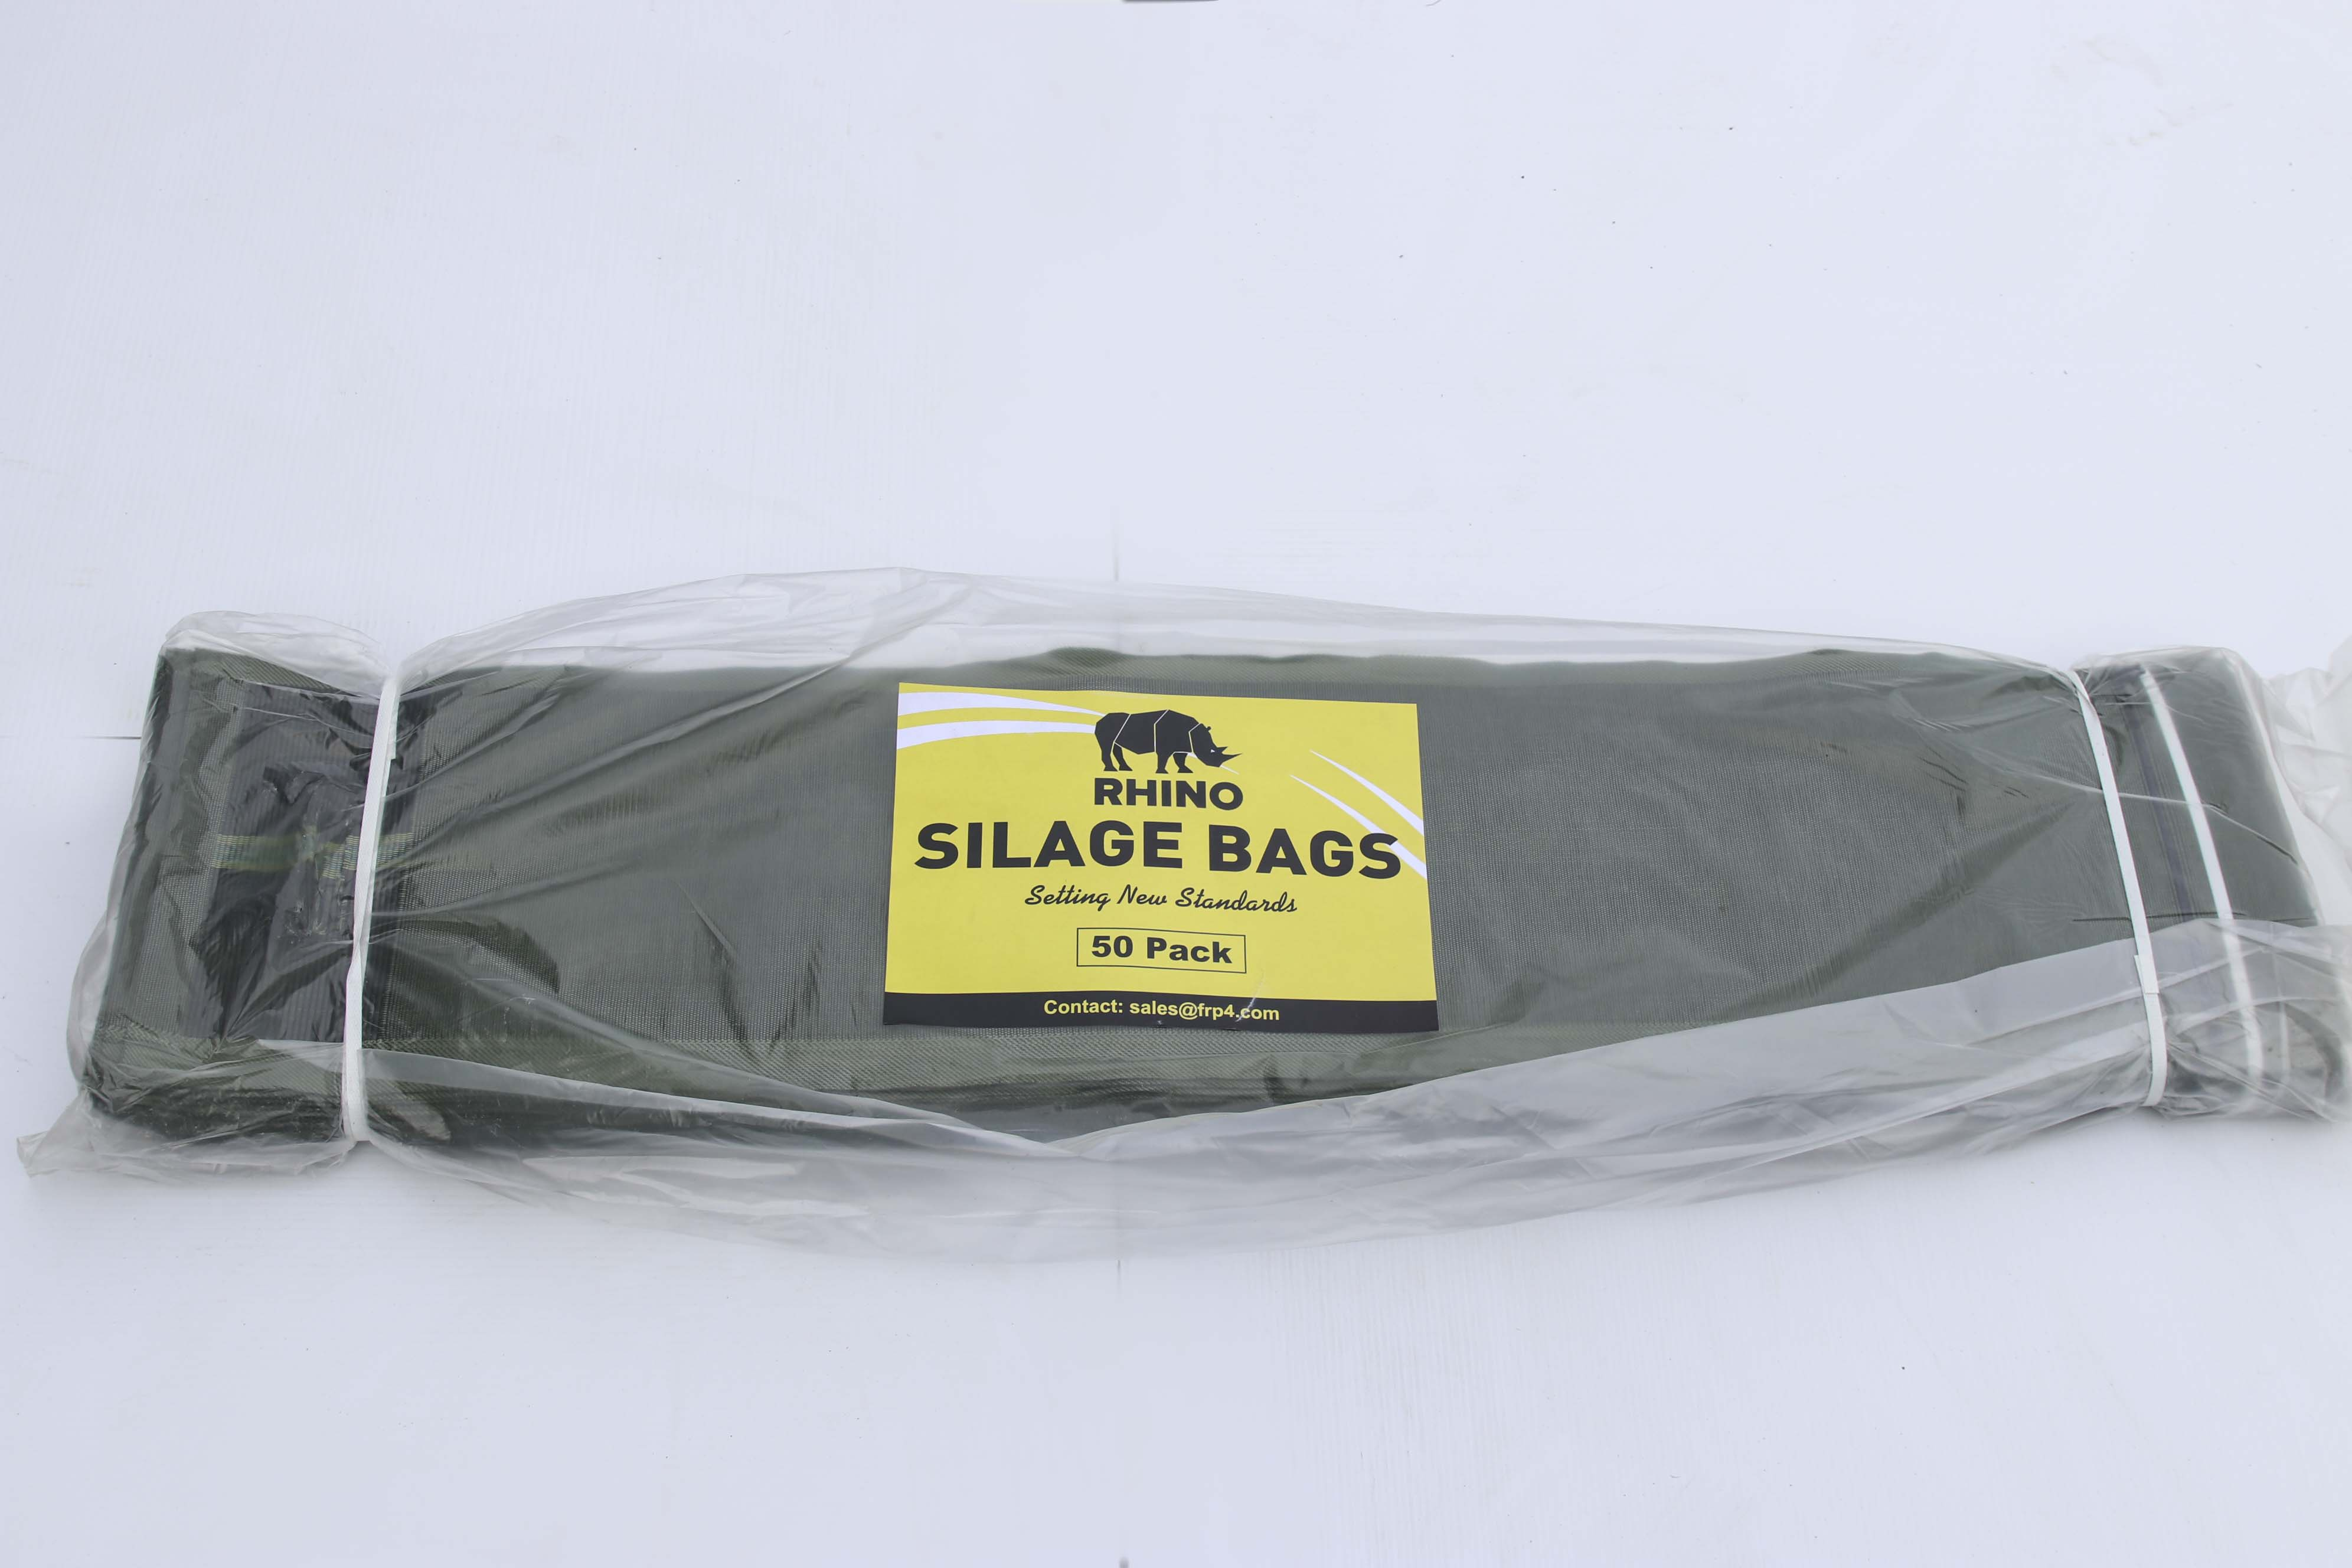 packaged silo bag